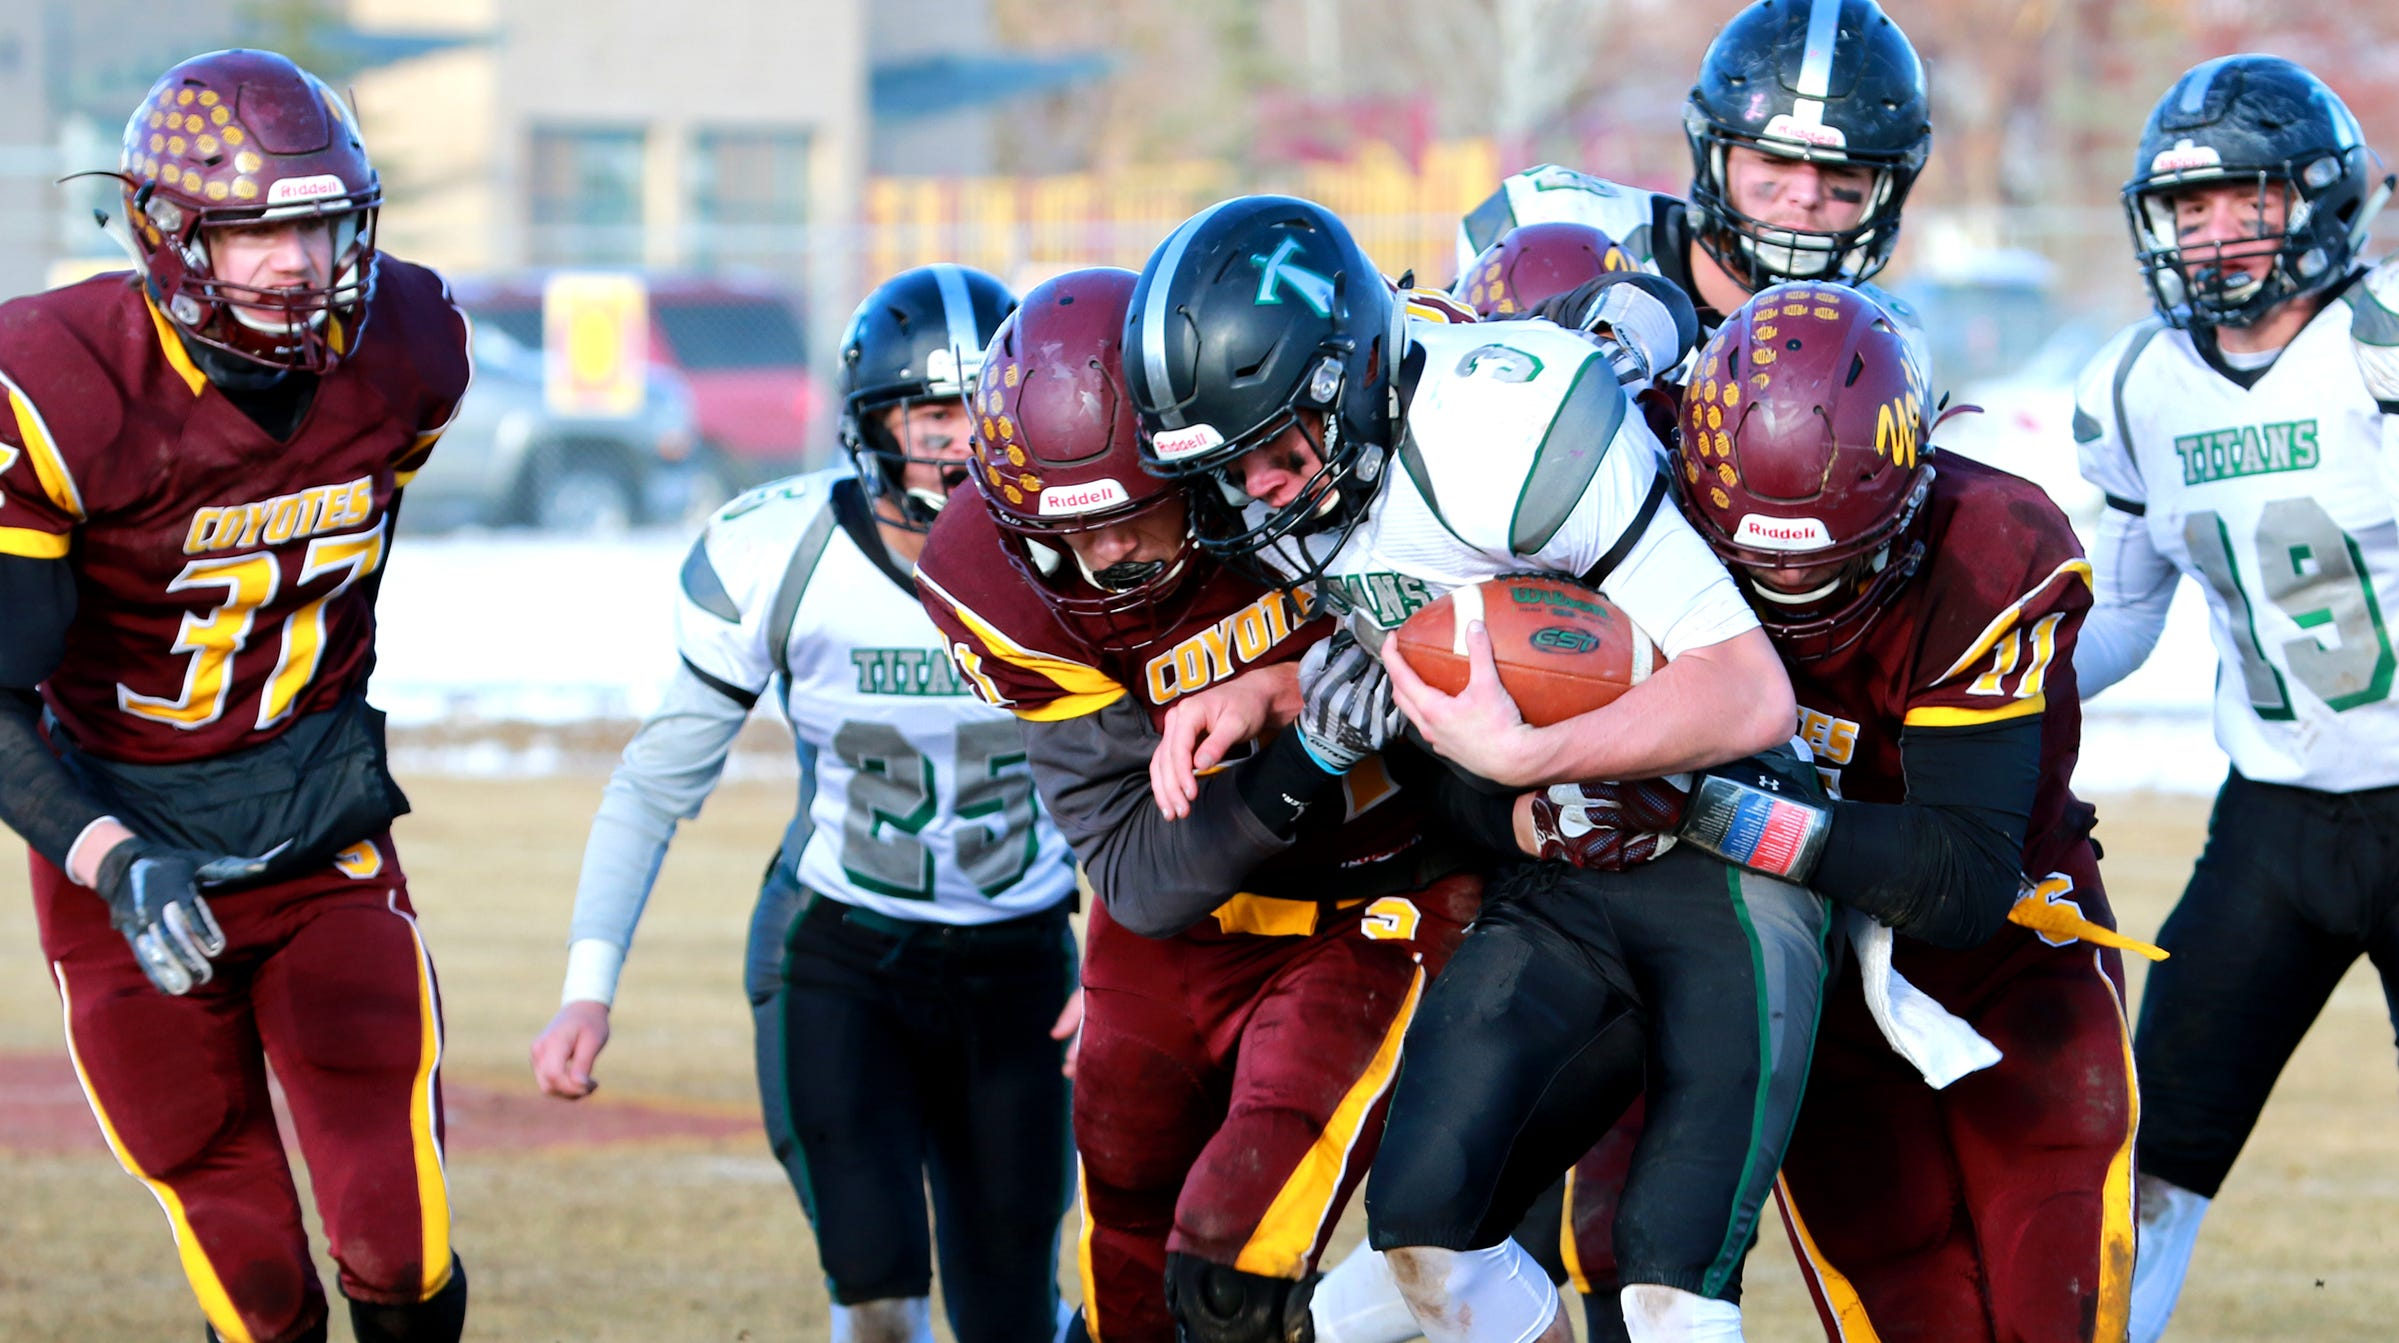 The defending state champion Titans will face Great Falls Central in the Eight-Man title game next Saturday.